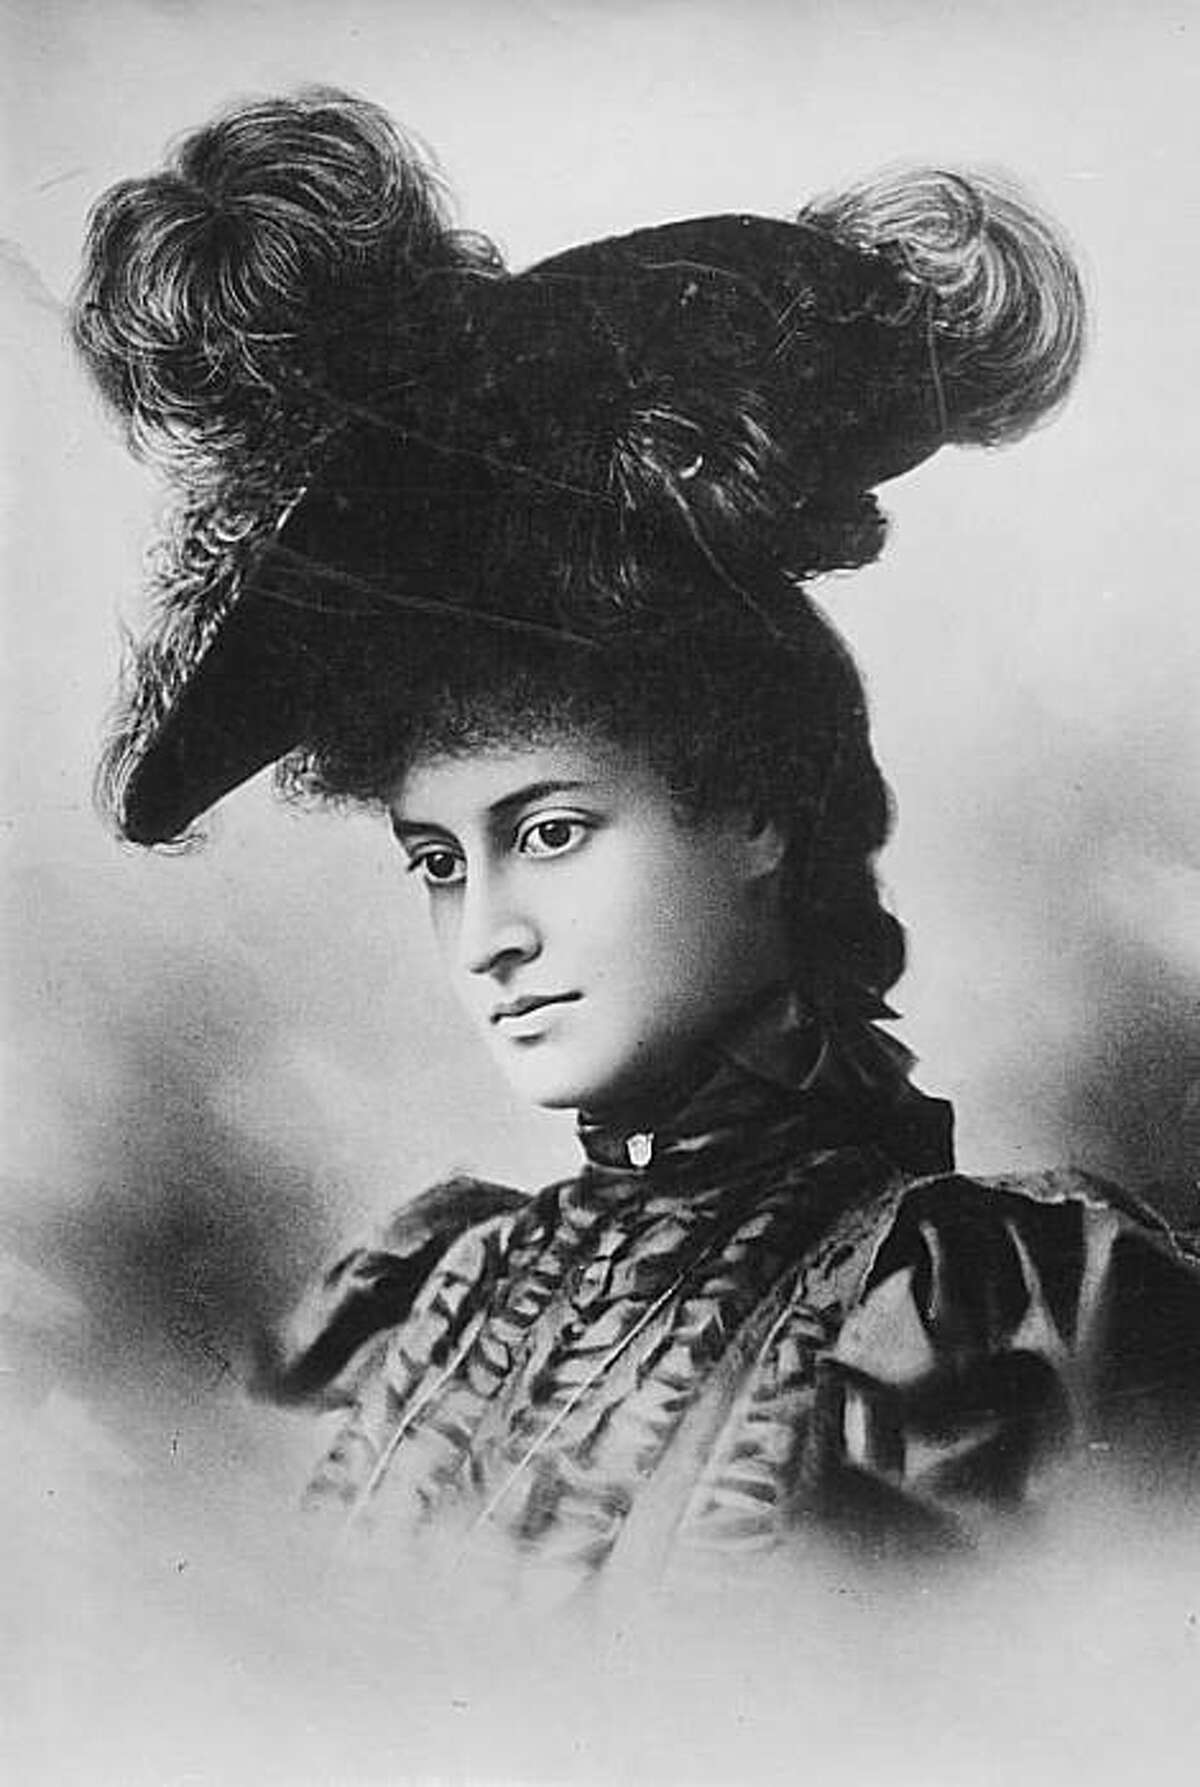 In this undated photo of Princess Ka'iulani, she appears to be dressed in mourning -- perhaps for the loss of Hawaiian independence.